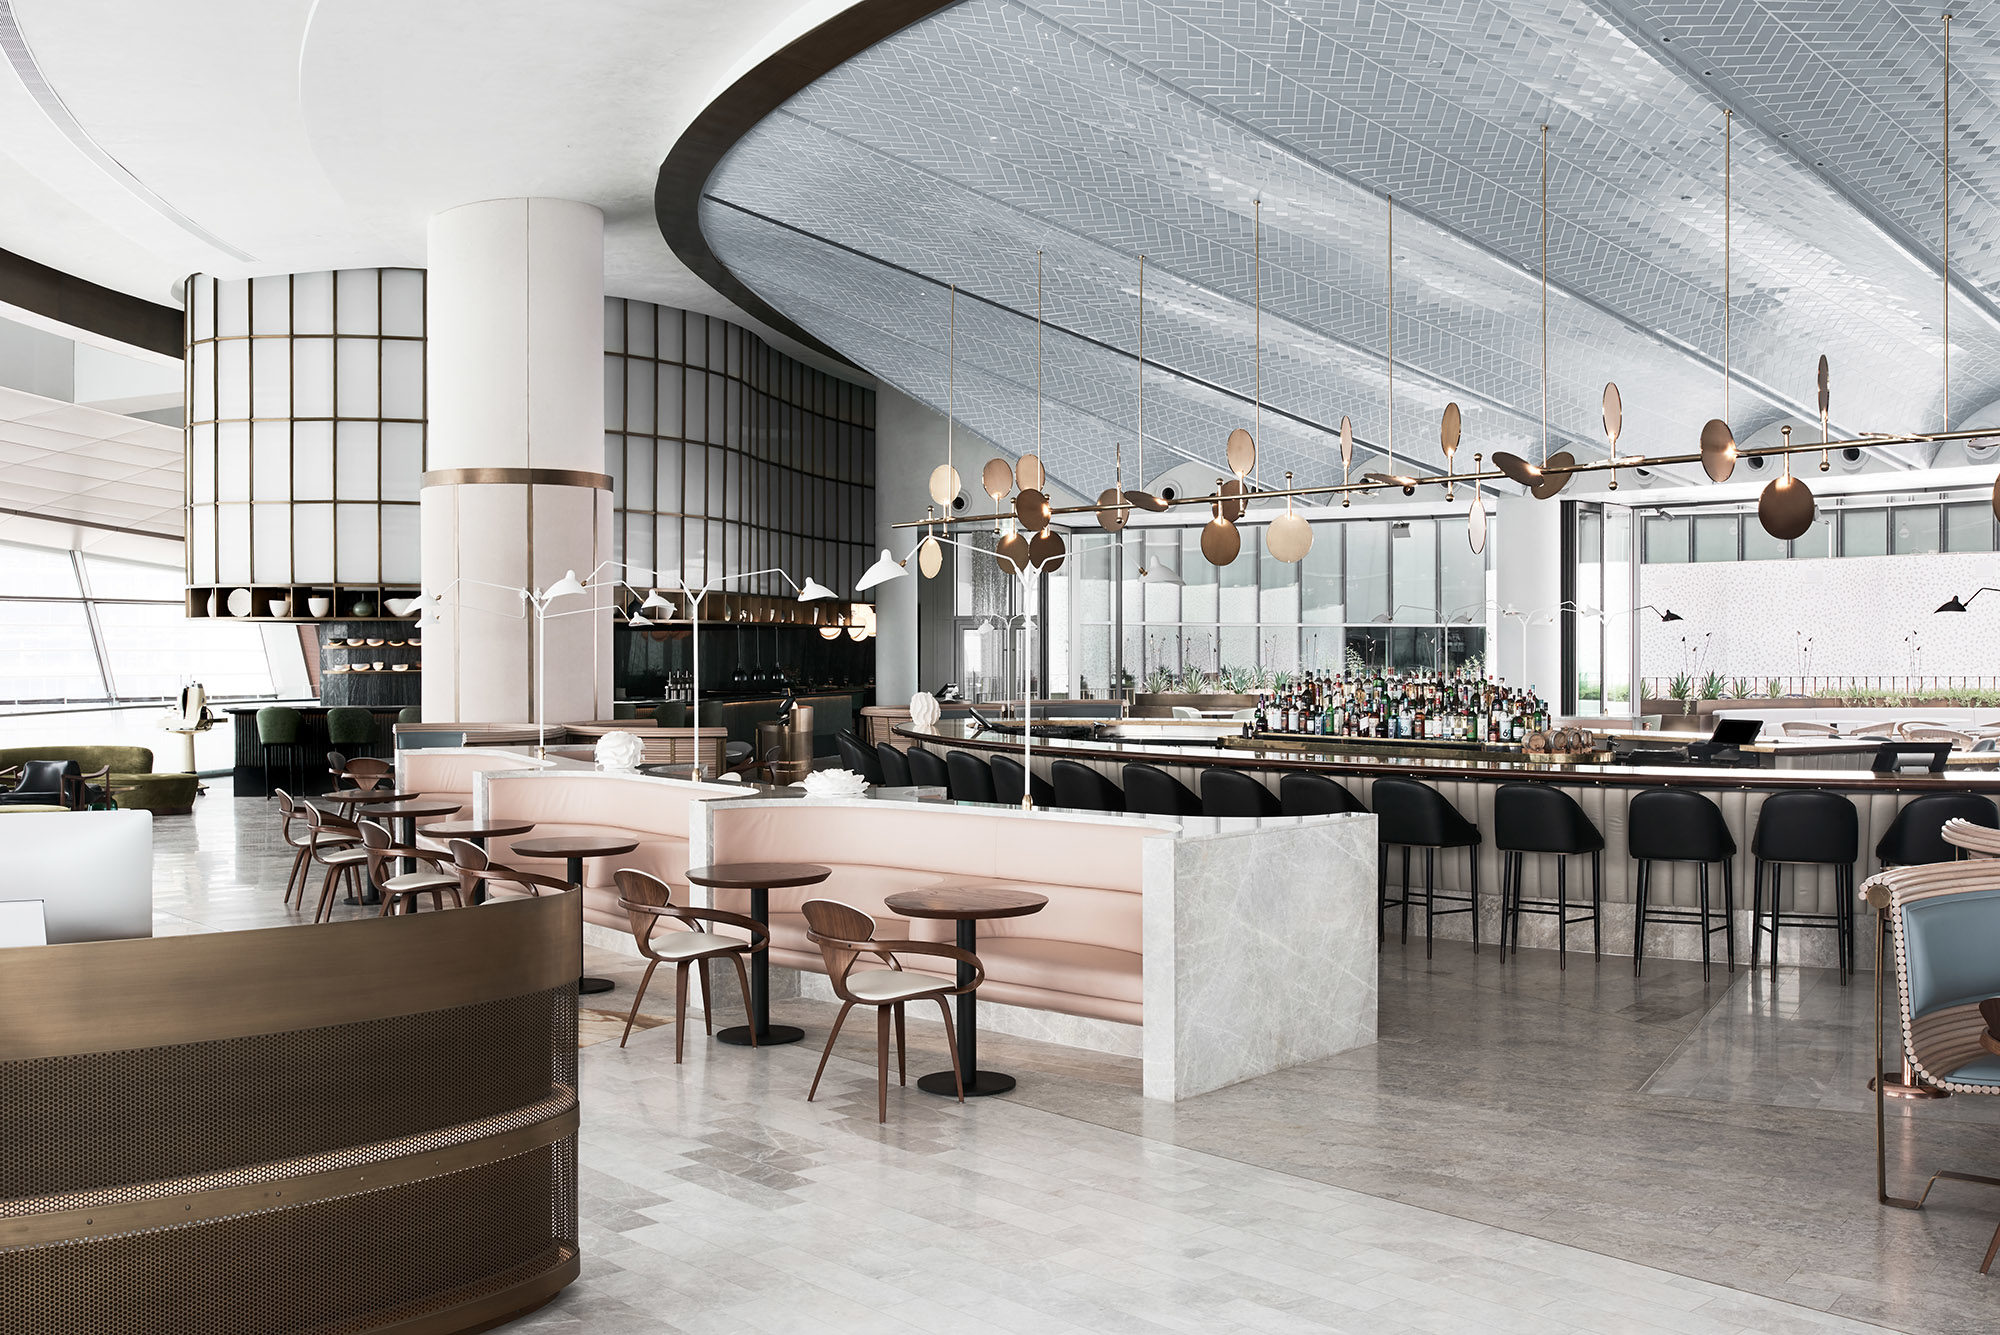 The Best Restaurant and Bar Design of 2017 - SURFACE Homey Restaurant Design on rustic restaurant design, country restaurant design, small restaurant design, elegant restaurant design, hip restaurant design, beautiful restaurant design, happy restaurant design, chic restaurant design, friendly restaurant design, traditional restaurant design, green restaurant design, casual restaurant design, unique restaurant design, hot dog restaurant design, cool restaurant design, simple restaurant design, vintage restaurant design, fresh restaurant design, urban restaurant design, funky restaurant design,